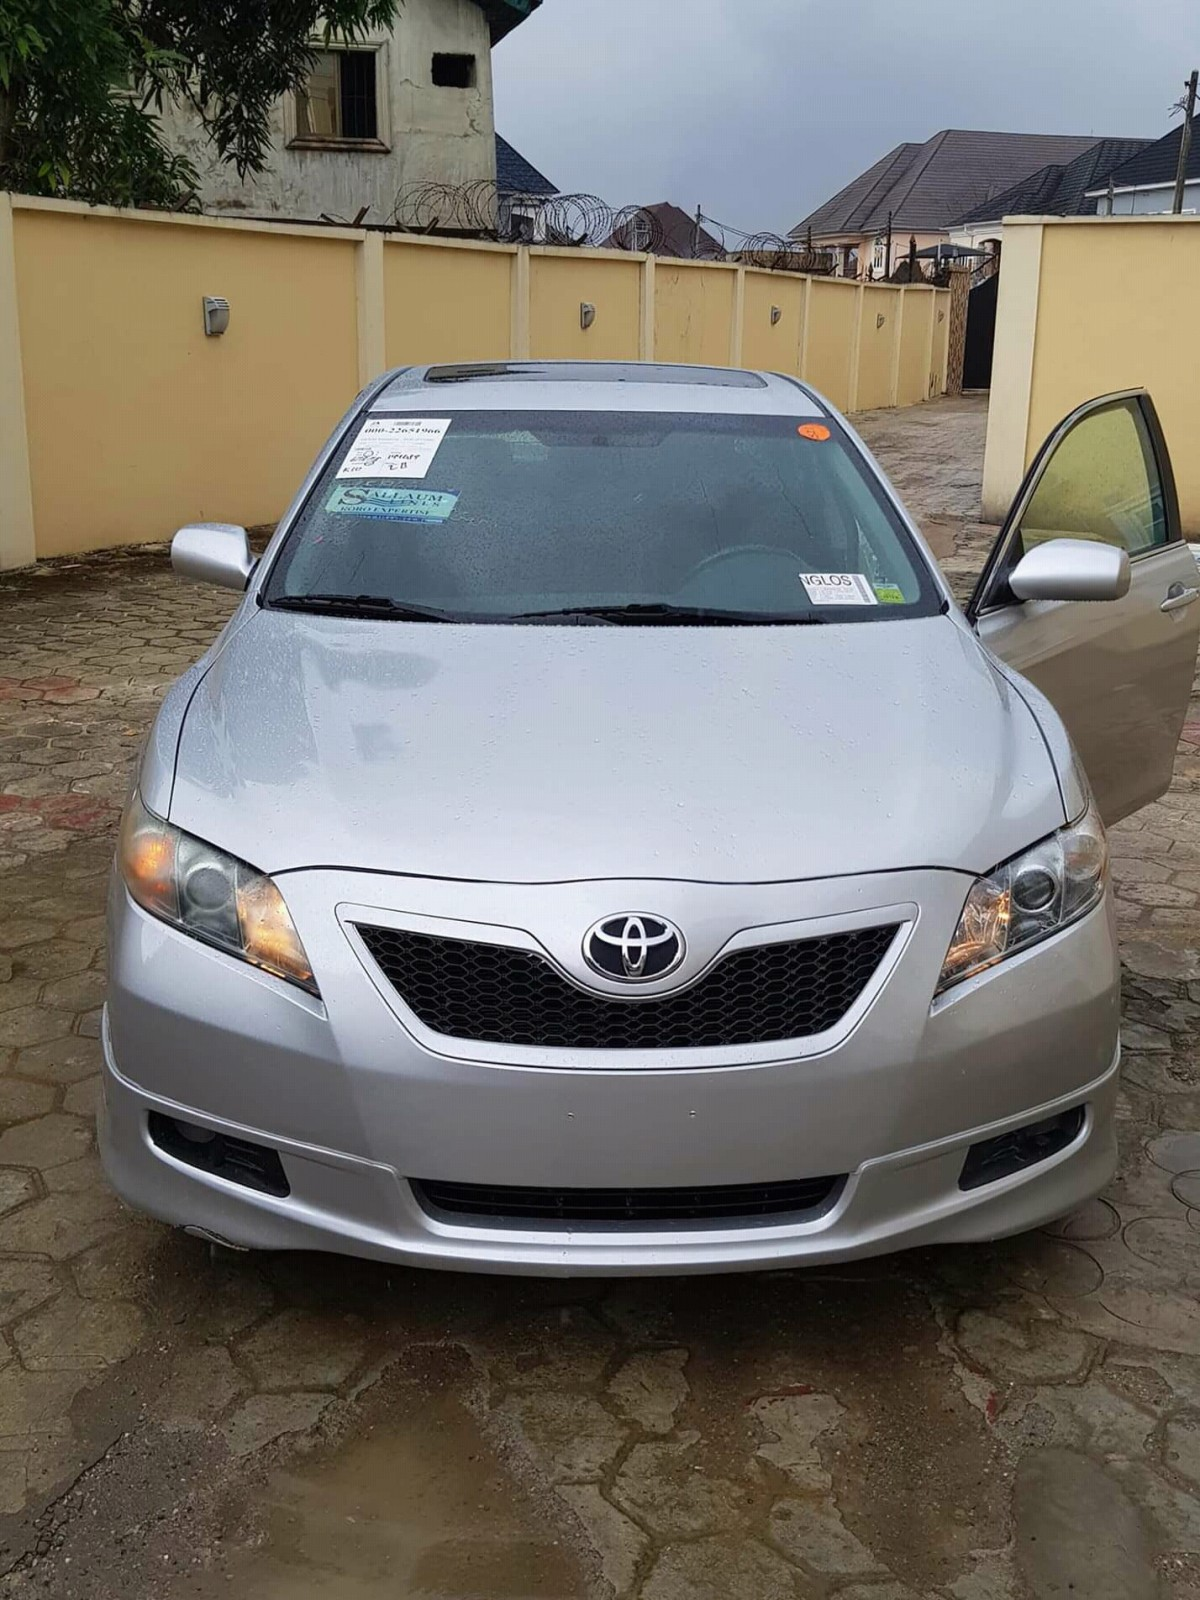 camry toyota se cars unbeatable boasts private jamaicaclassifiedonline